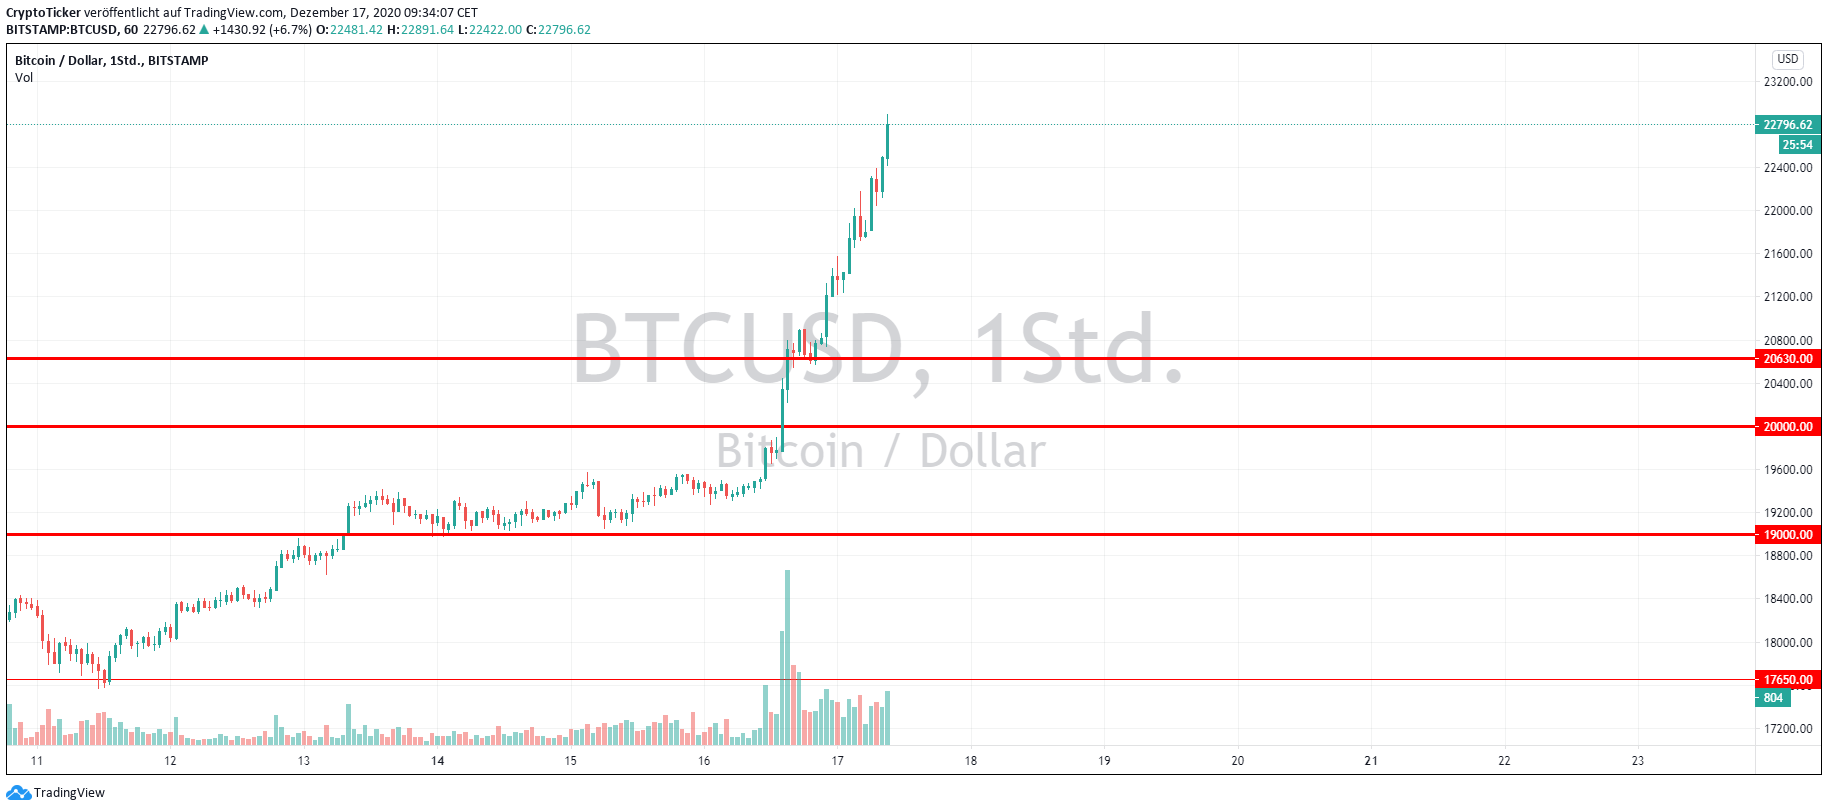 BTC/USD 1-Day, showing important Stop-Loss areas